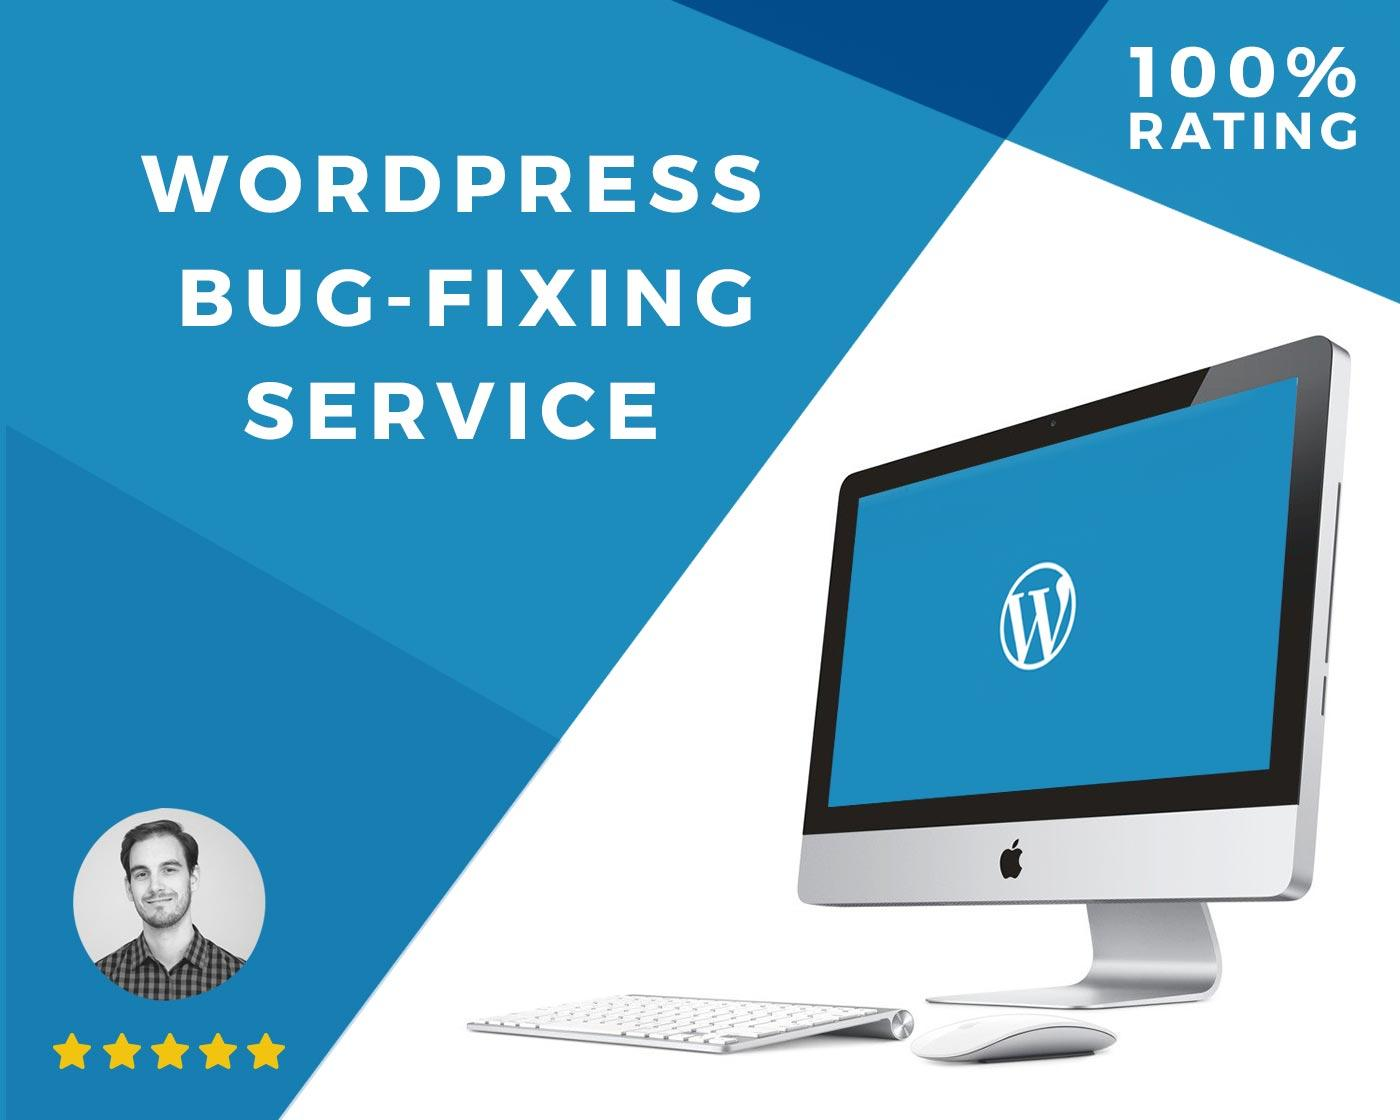 WordPress Bug-Fixing Service by Ryan_Carter - 86125